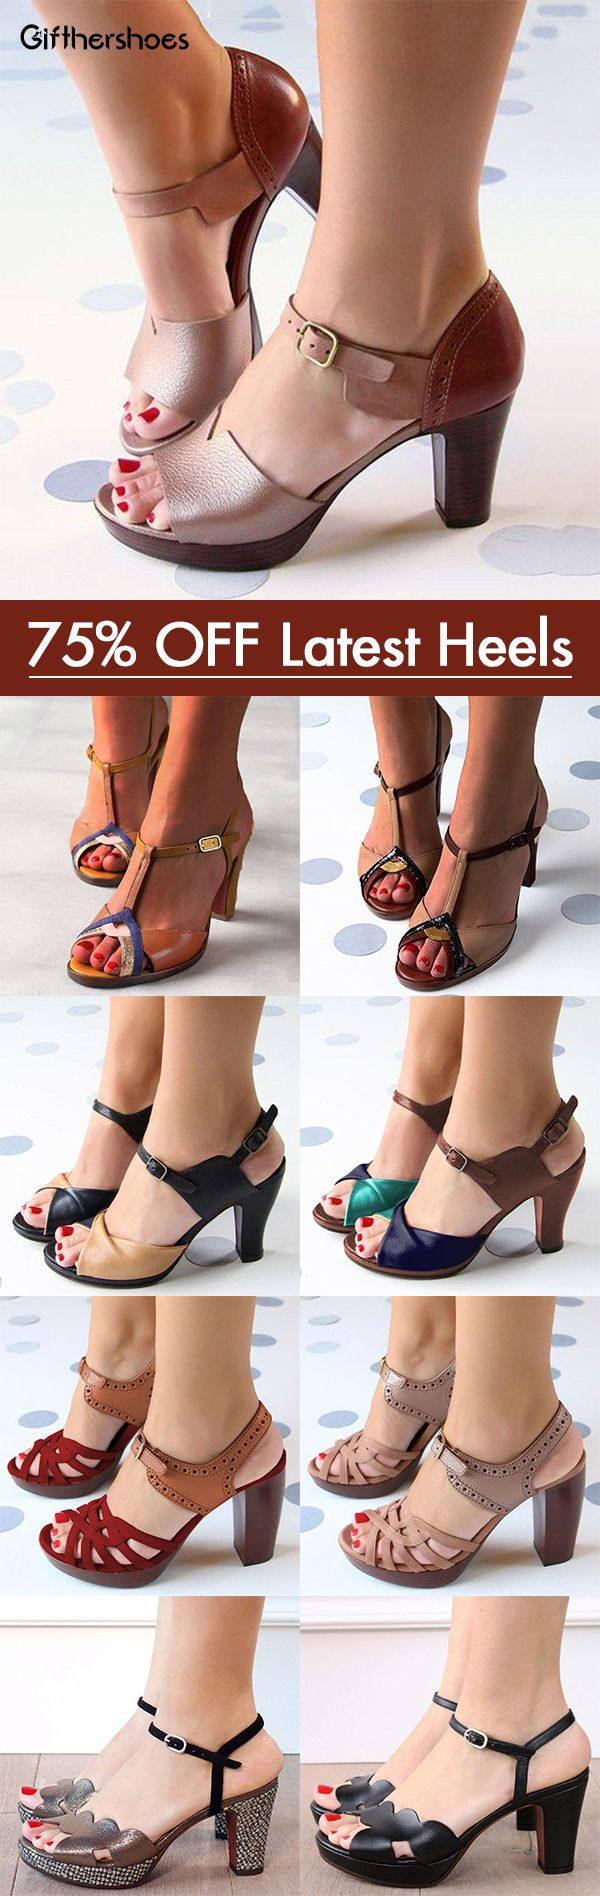 SHOP NOW>>68% OFF Hot Chunky Heels Sandals Shoes Picks for Your Daily Outfits.Must Have Pair!